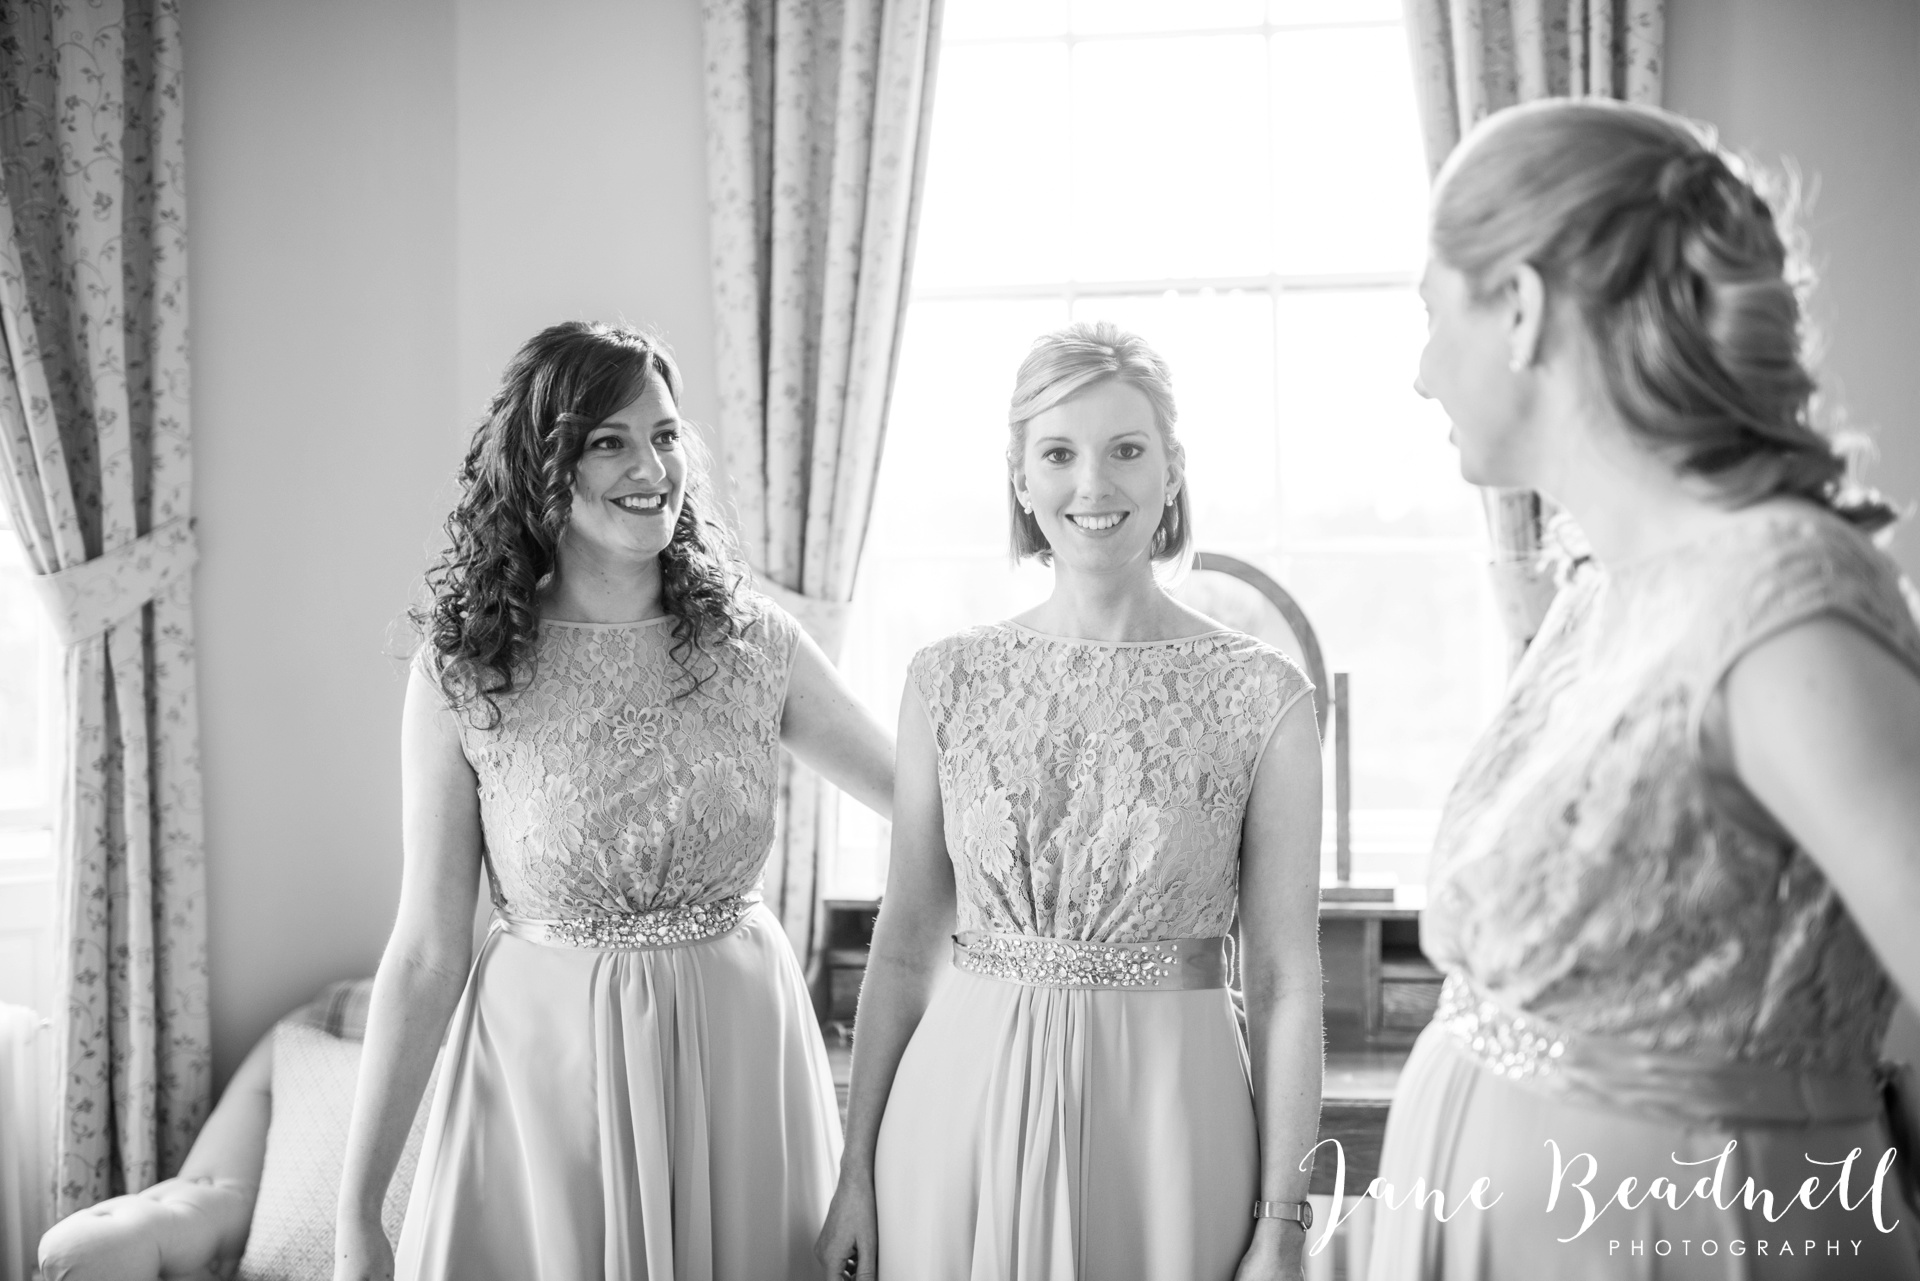 Middleton Lodge wedding photography by fine art wedding photographer Jane Beadnell_0025